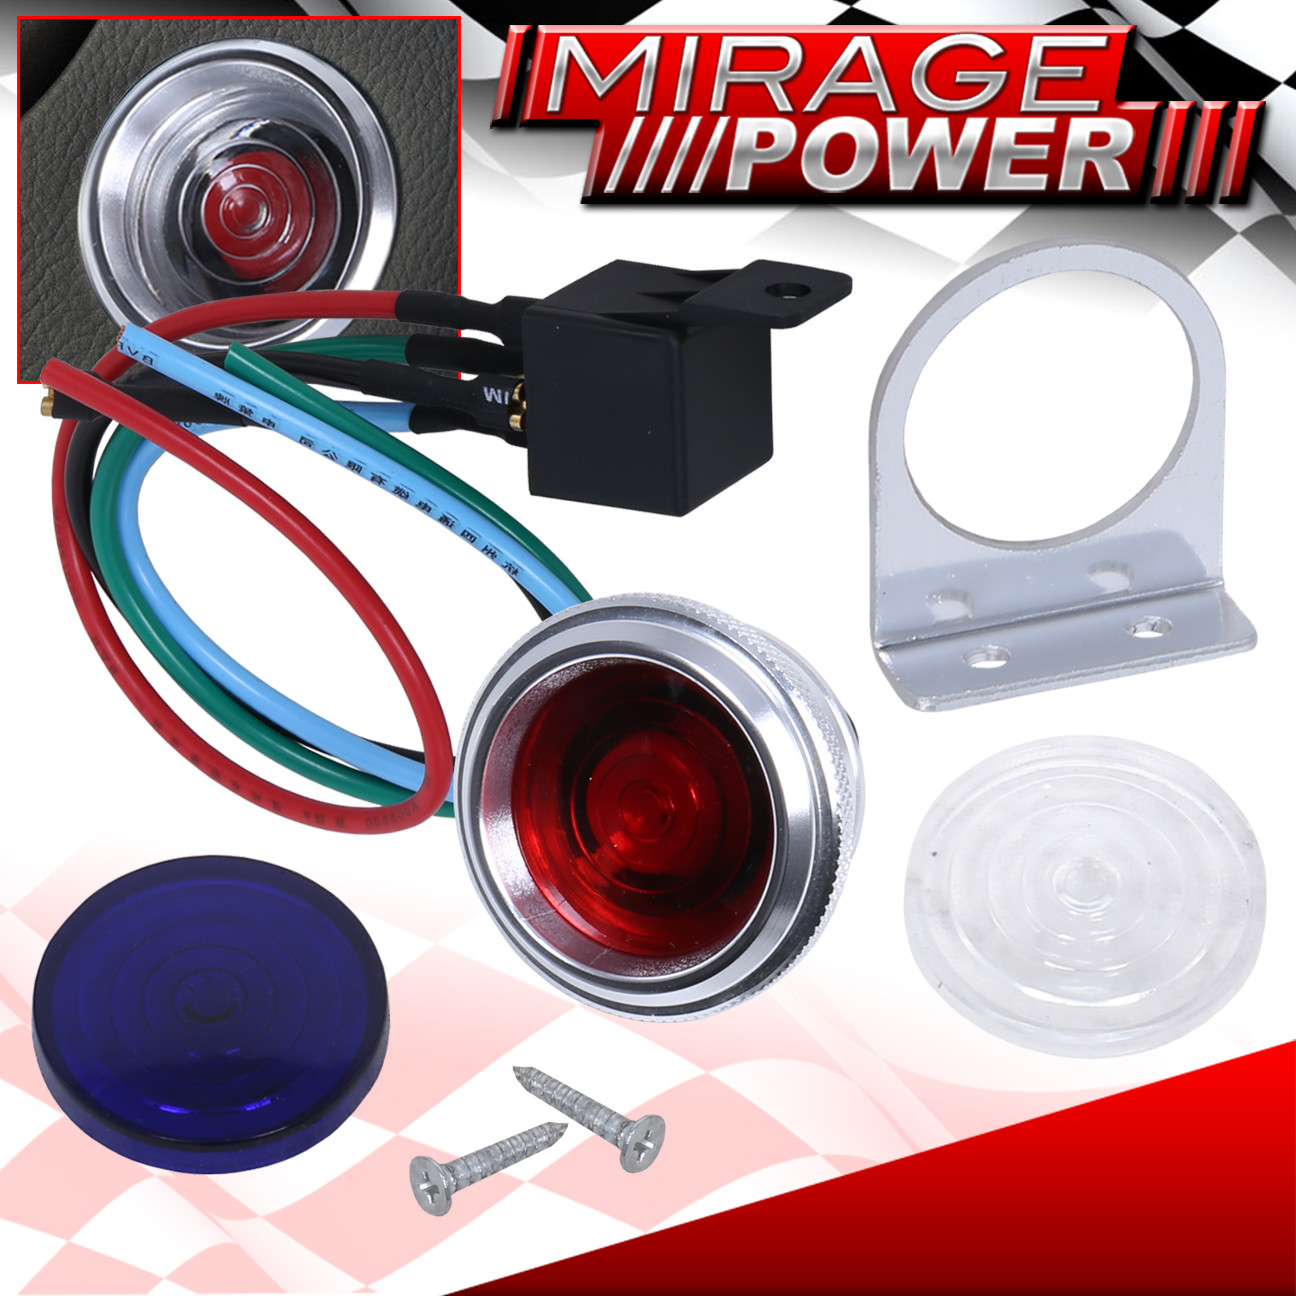 hight resolution of details about 12v push start button engine starter ignition kit for honda civic accord crx